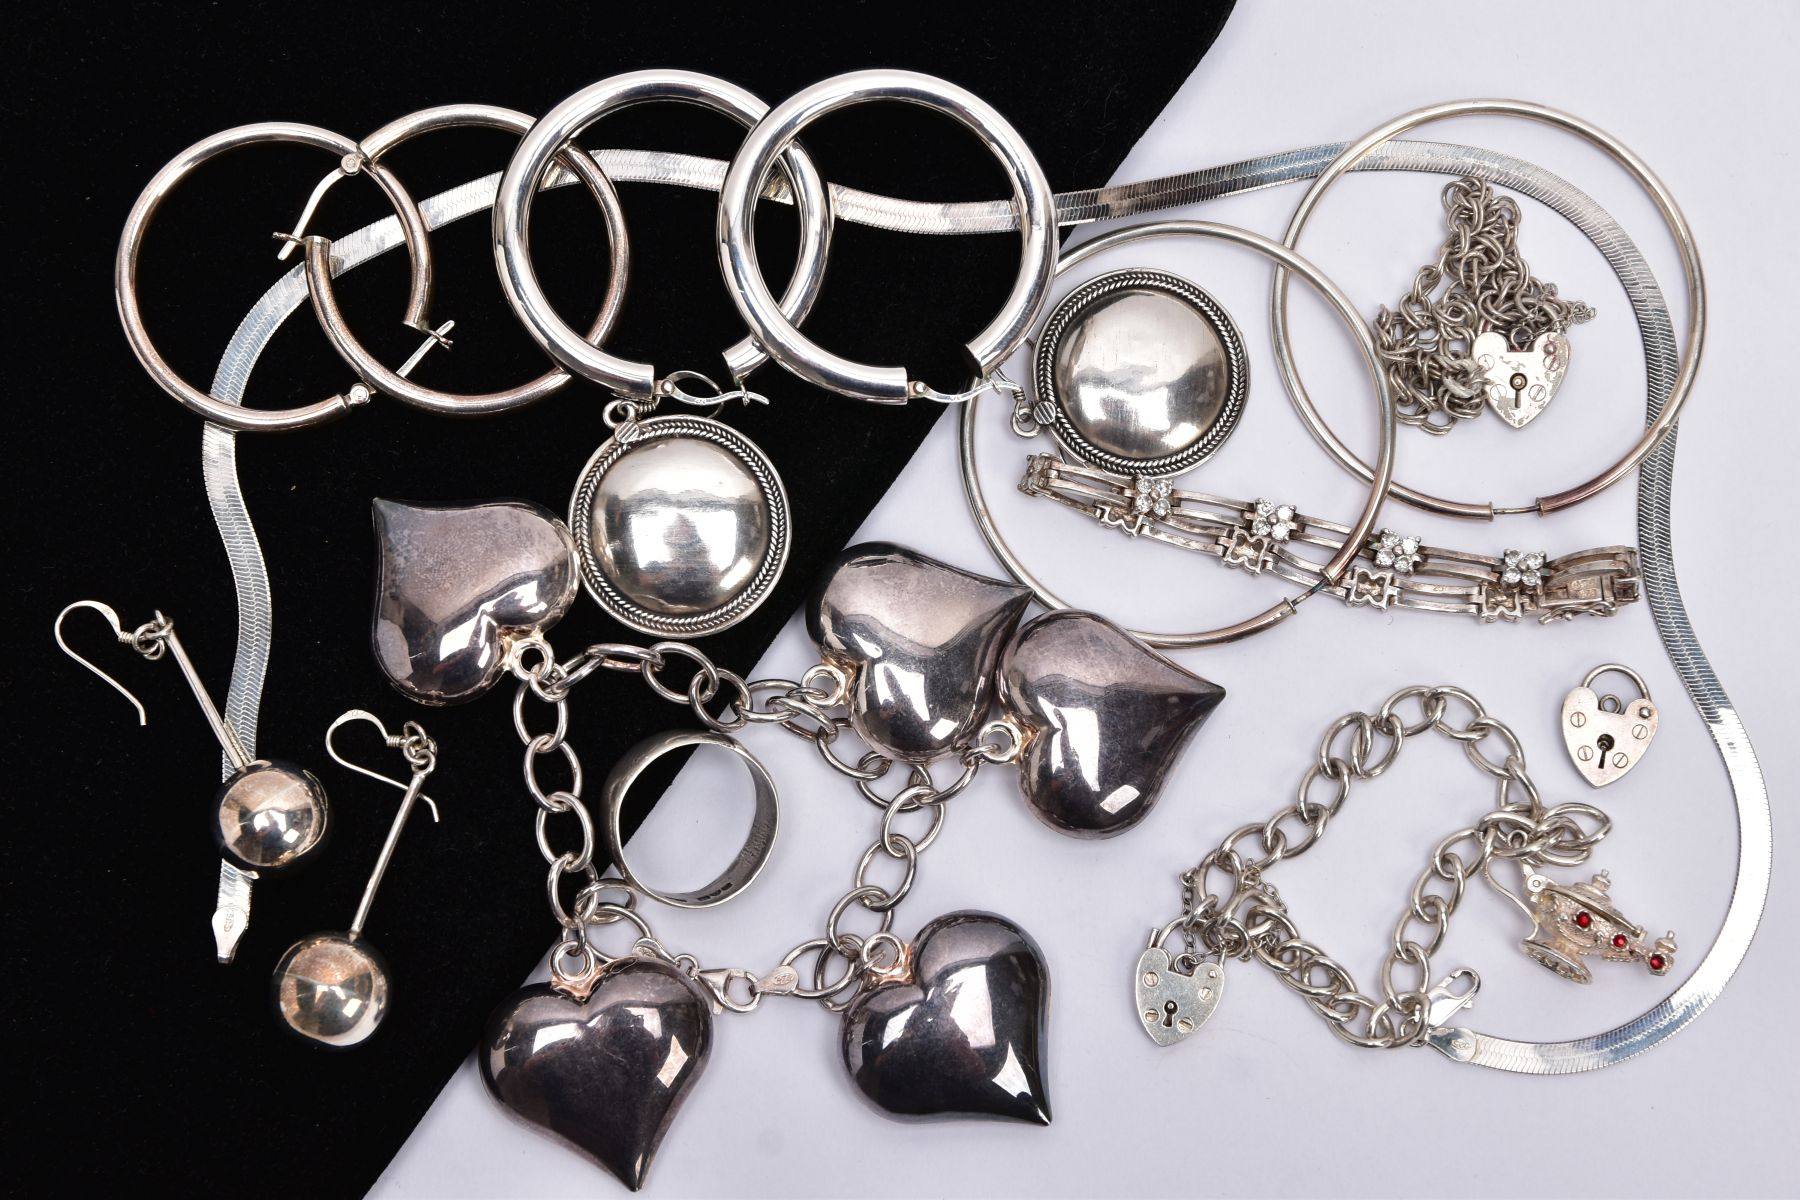 A BAG OF ASSORTED SILVER AND WHITE METAL JEWELLERY, to include a silver charm bracelet suspending